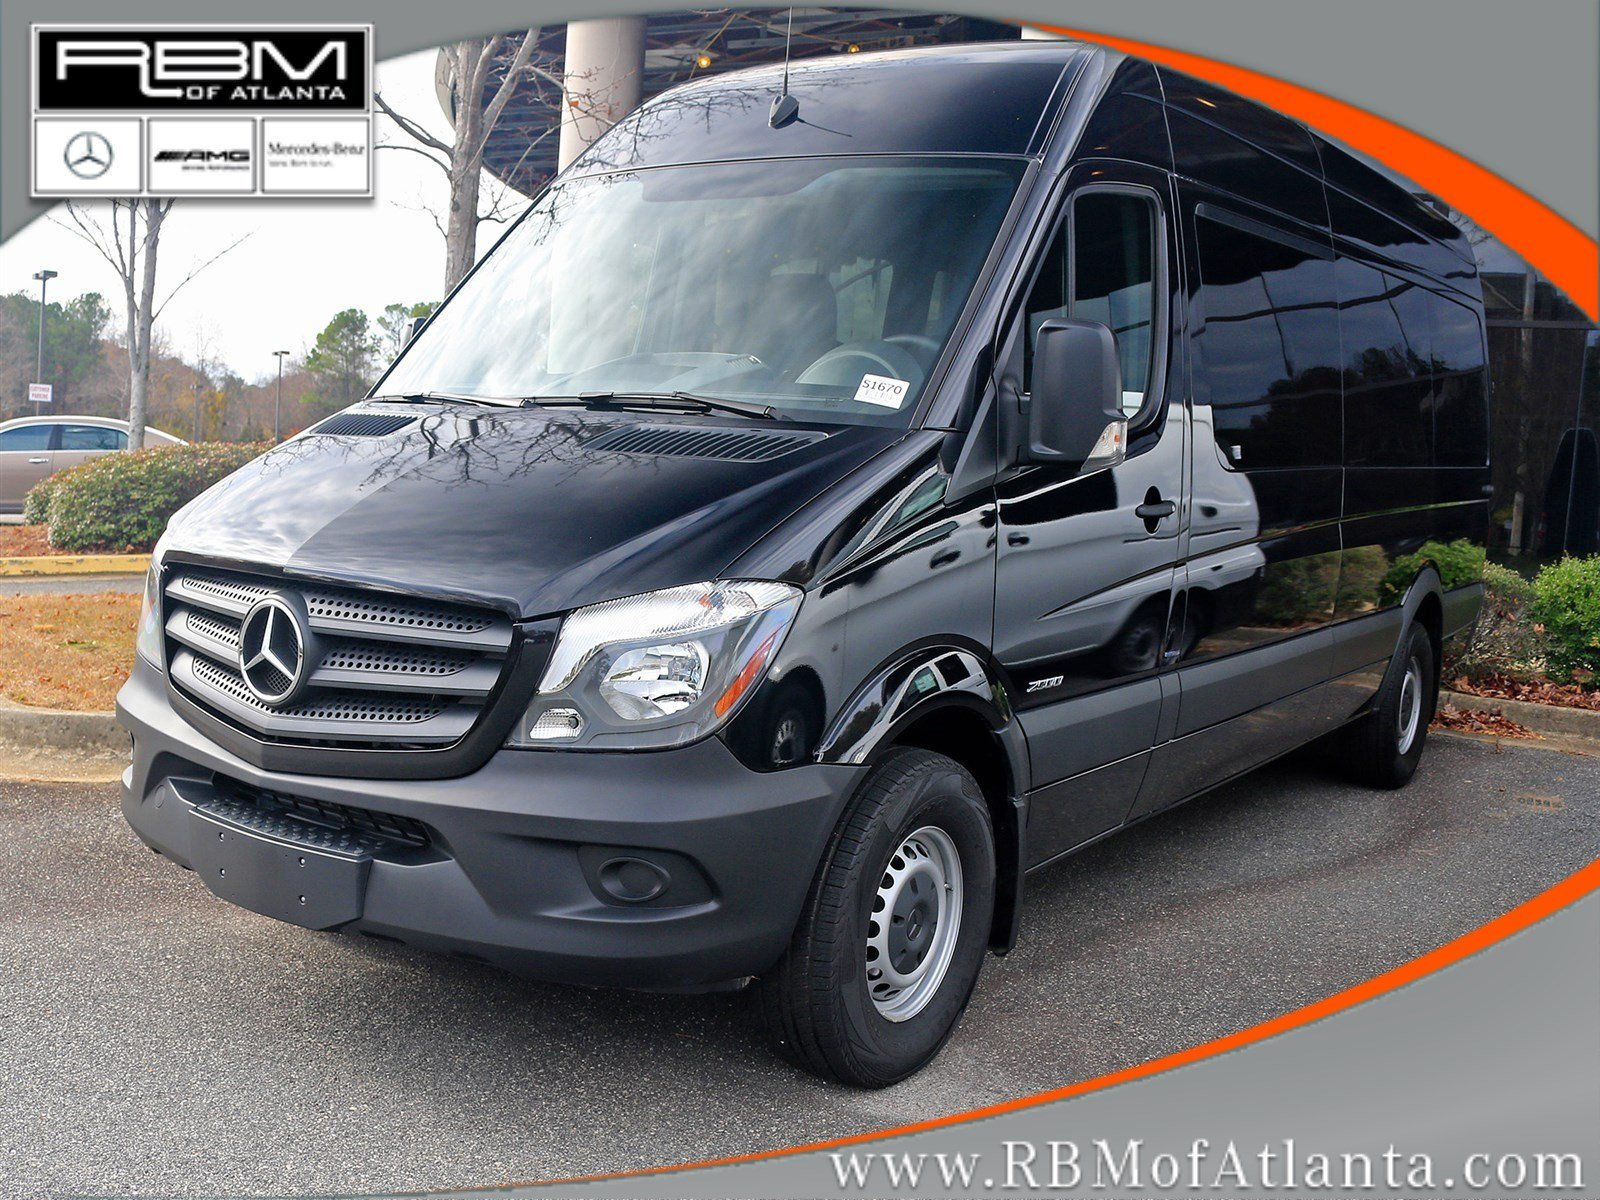 New 2016 mercedes benz sprinter 2500 passenger van for New mercedes benz sprinter